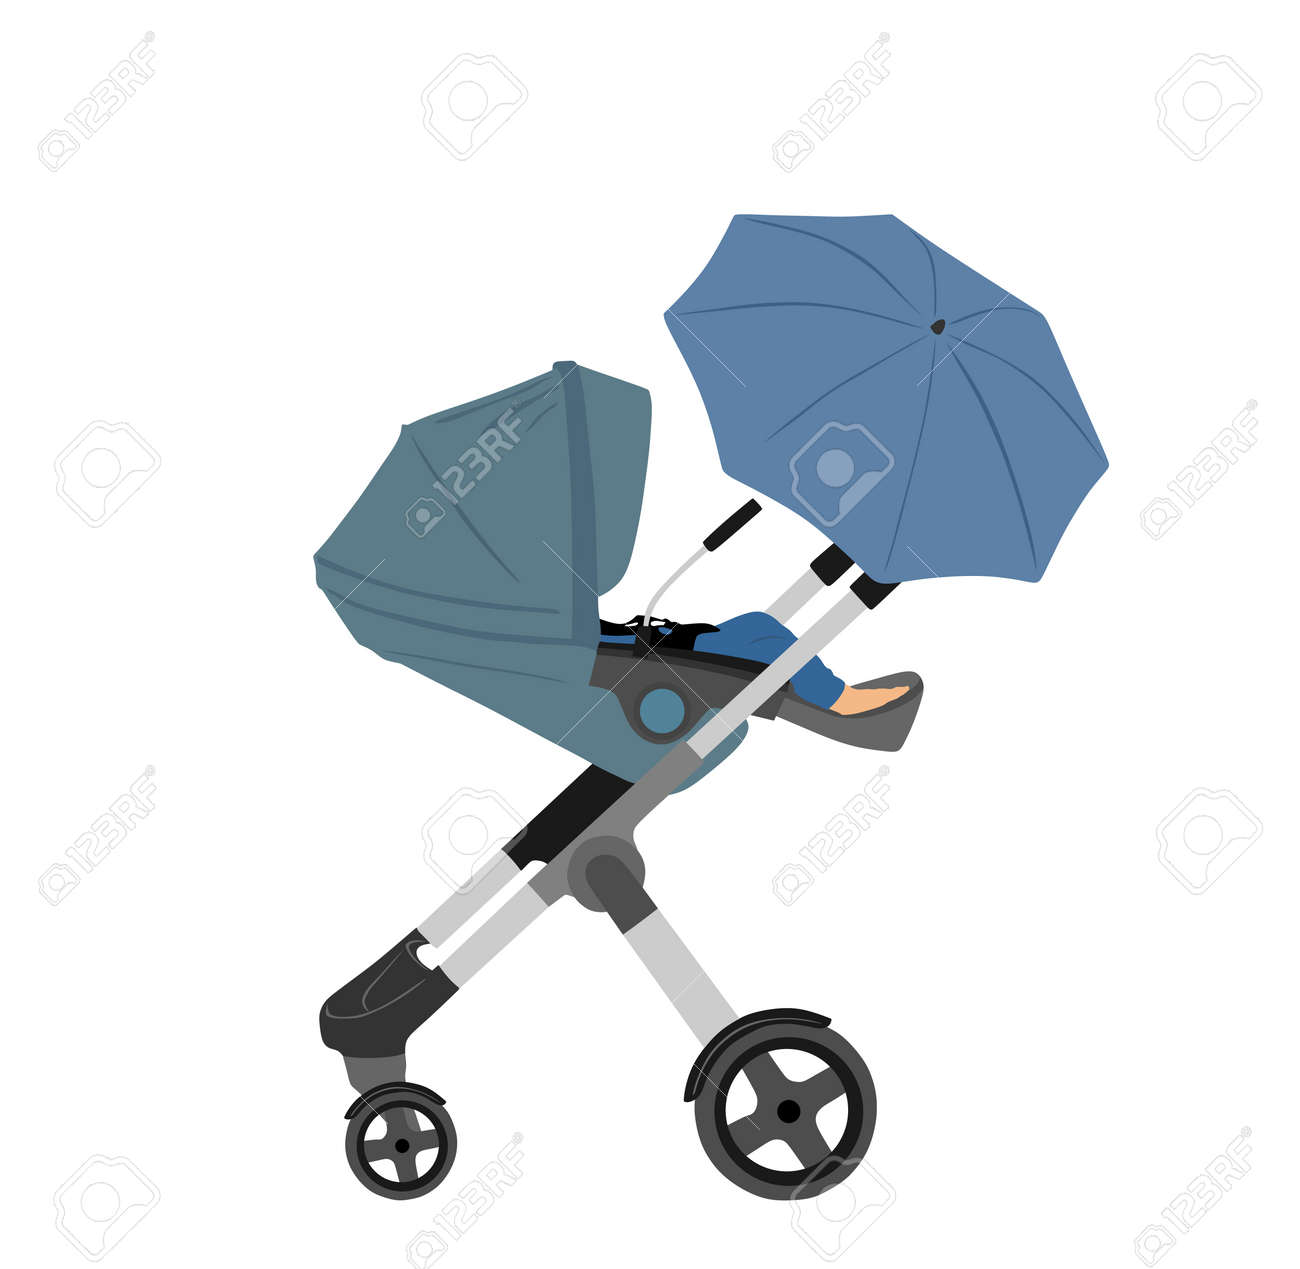 Transportation Little baby in pram vector illustration isolated on white background. New born baby in carriage. Toddler cart. Child in baby stroller, trolley. happy family with newborn son or daughter - 173060173